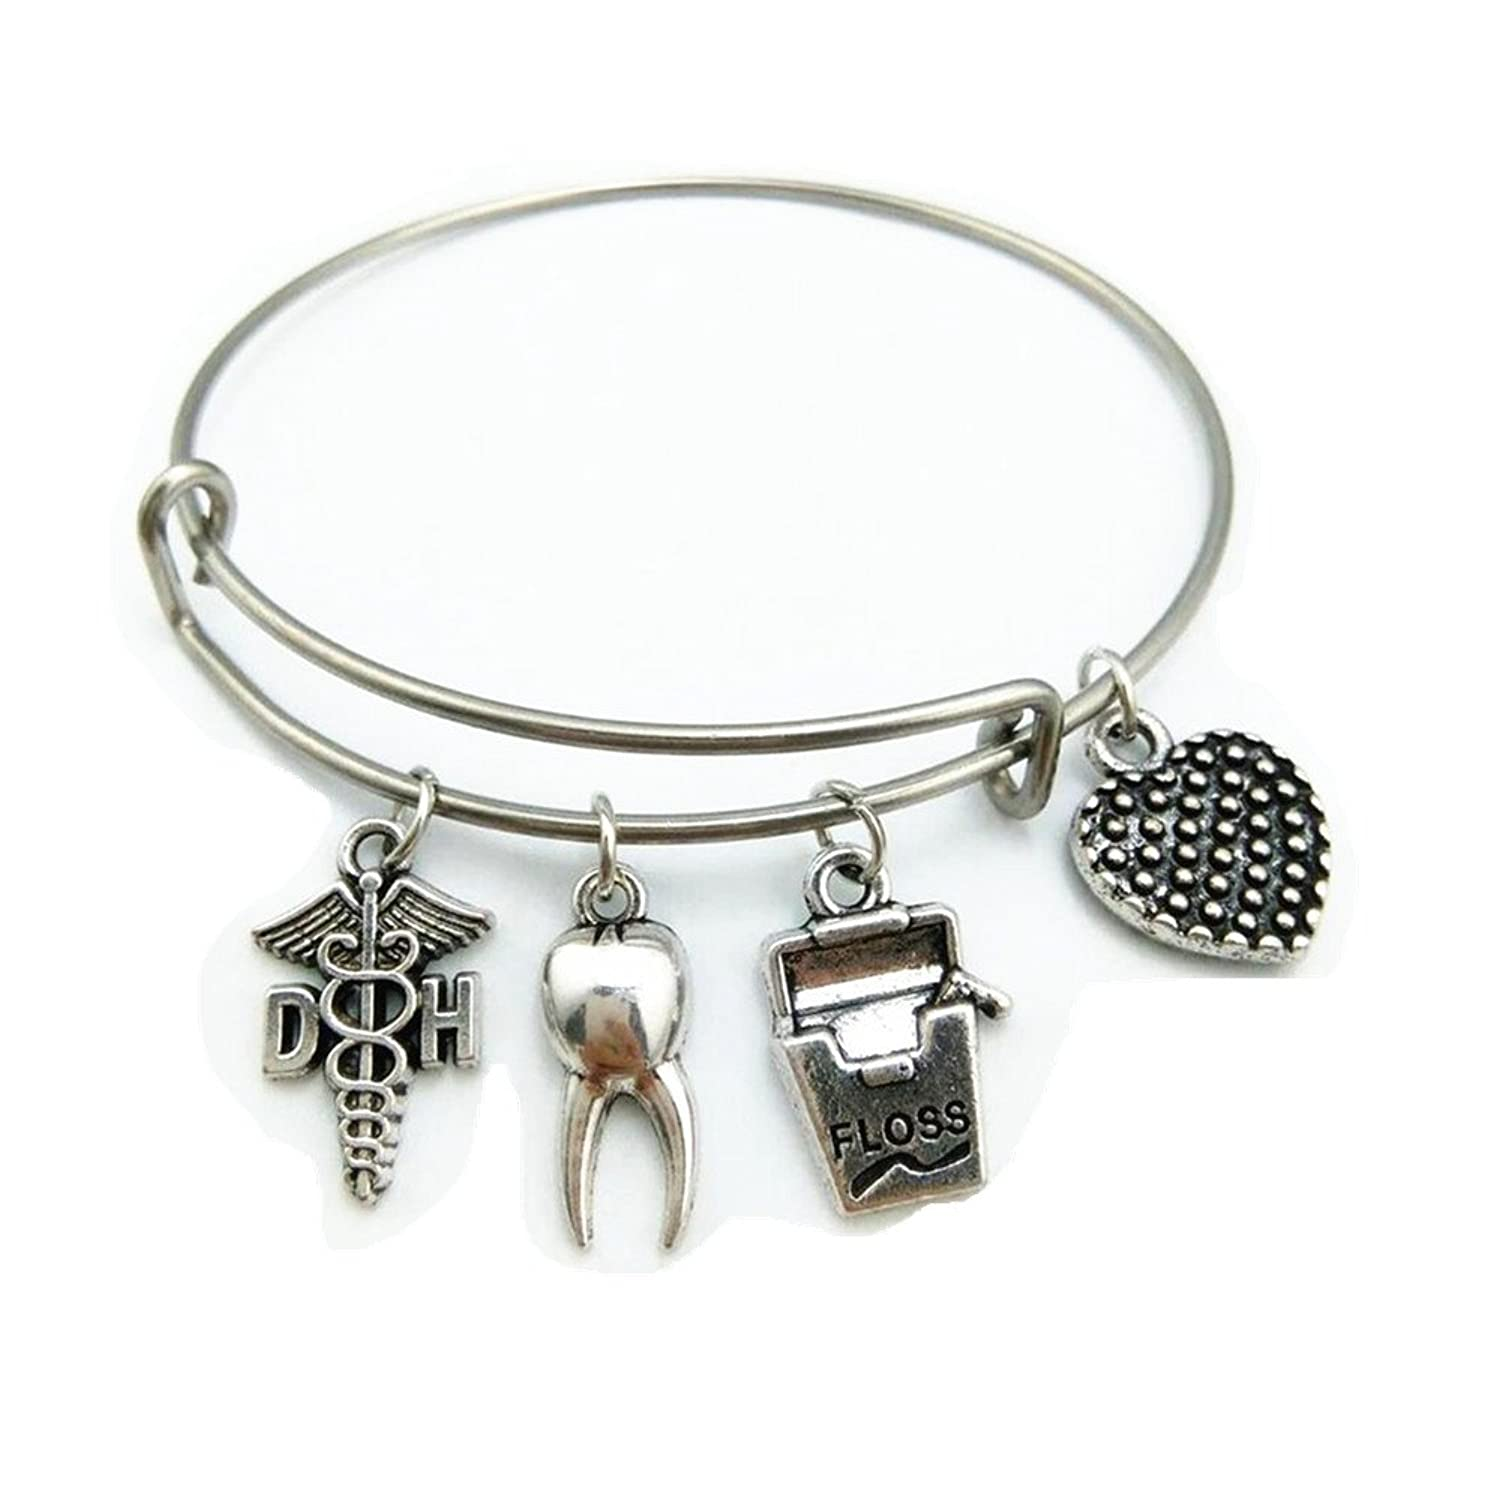 Stainless Steel Adjustable Wire Bangle DH Dental Hygienist Caduceus Charm Medical Bracelet Graduation Jewelry Gifts